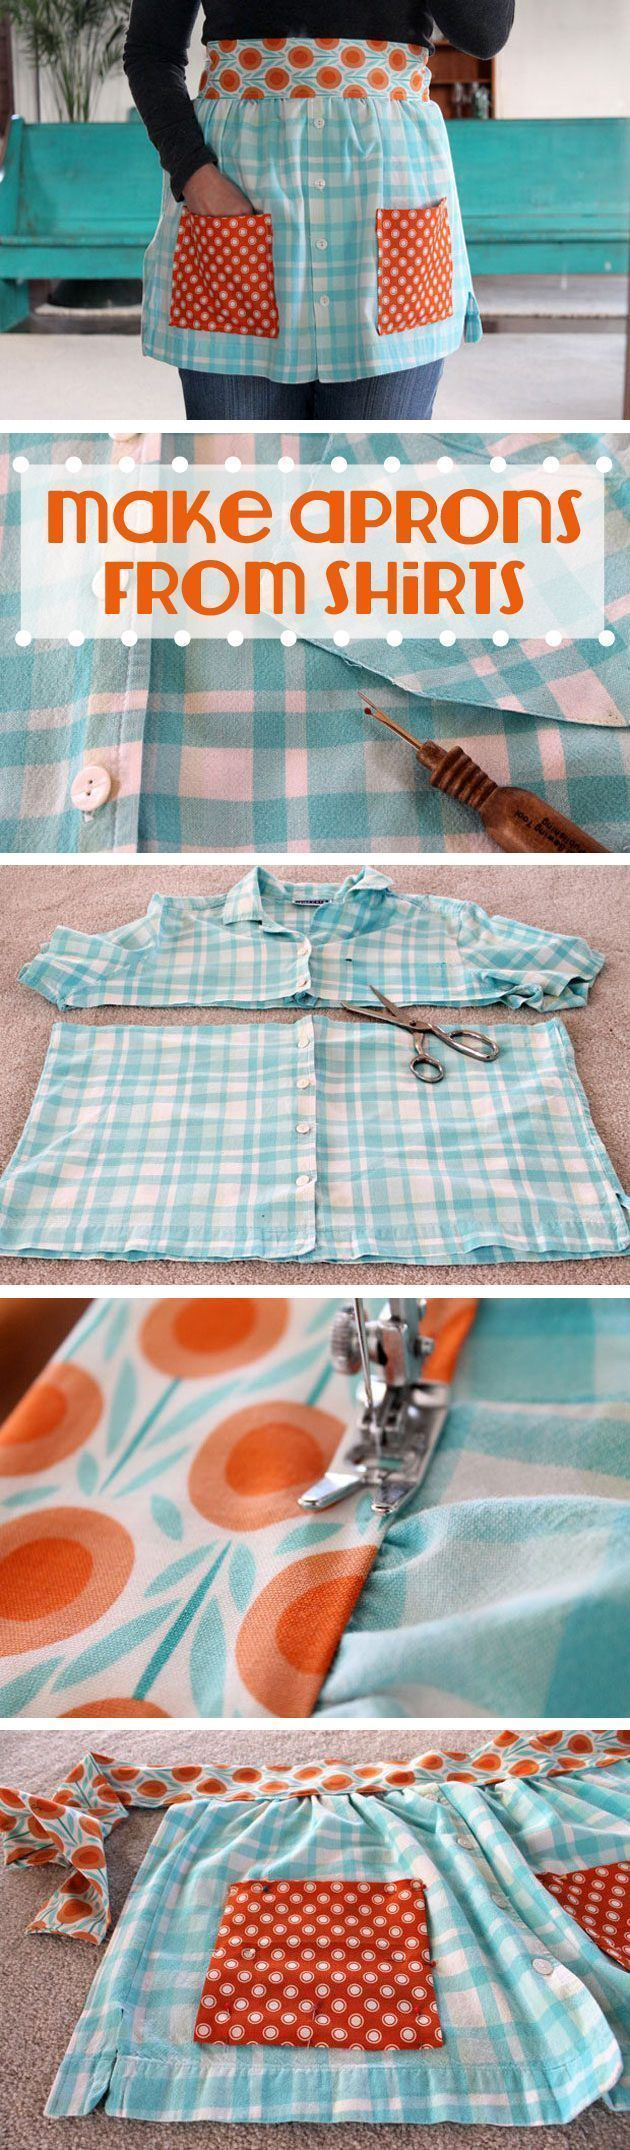 Flannel shirt apron  How to Make Aprons From Shirts  Fashion forward Apron and Craft